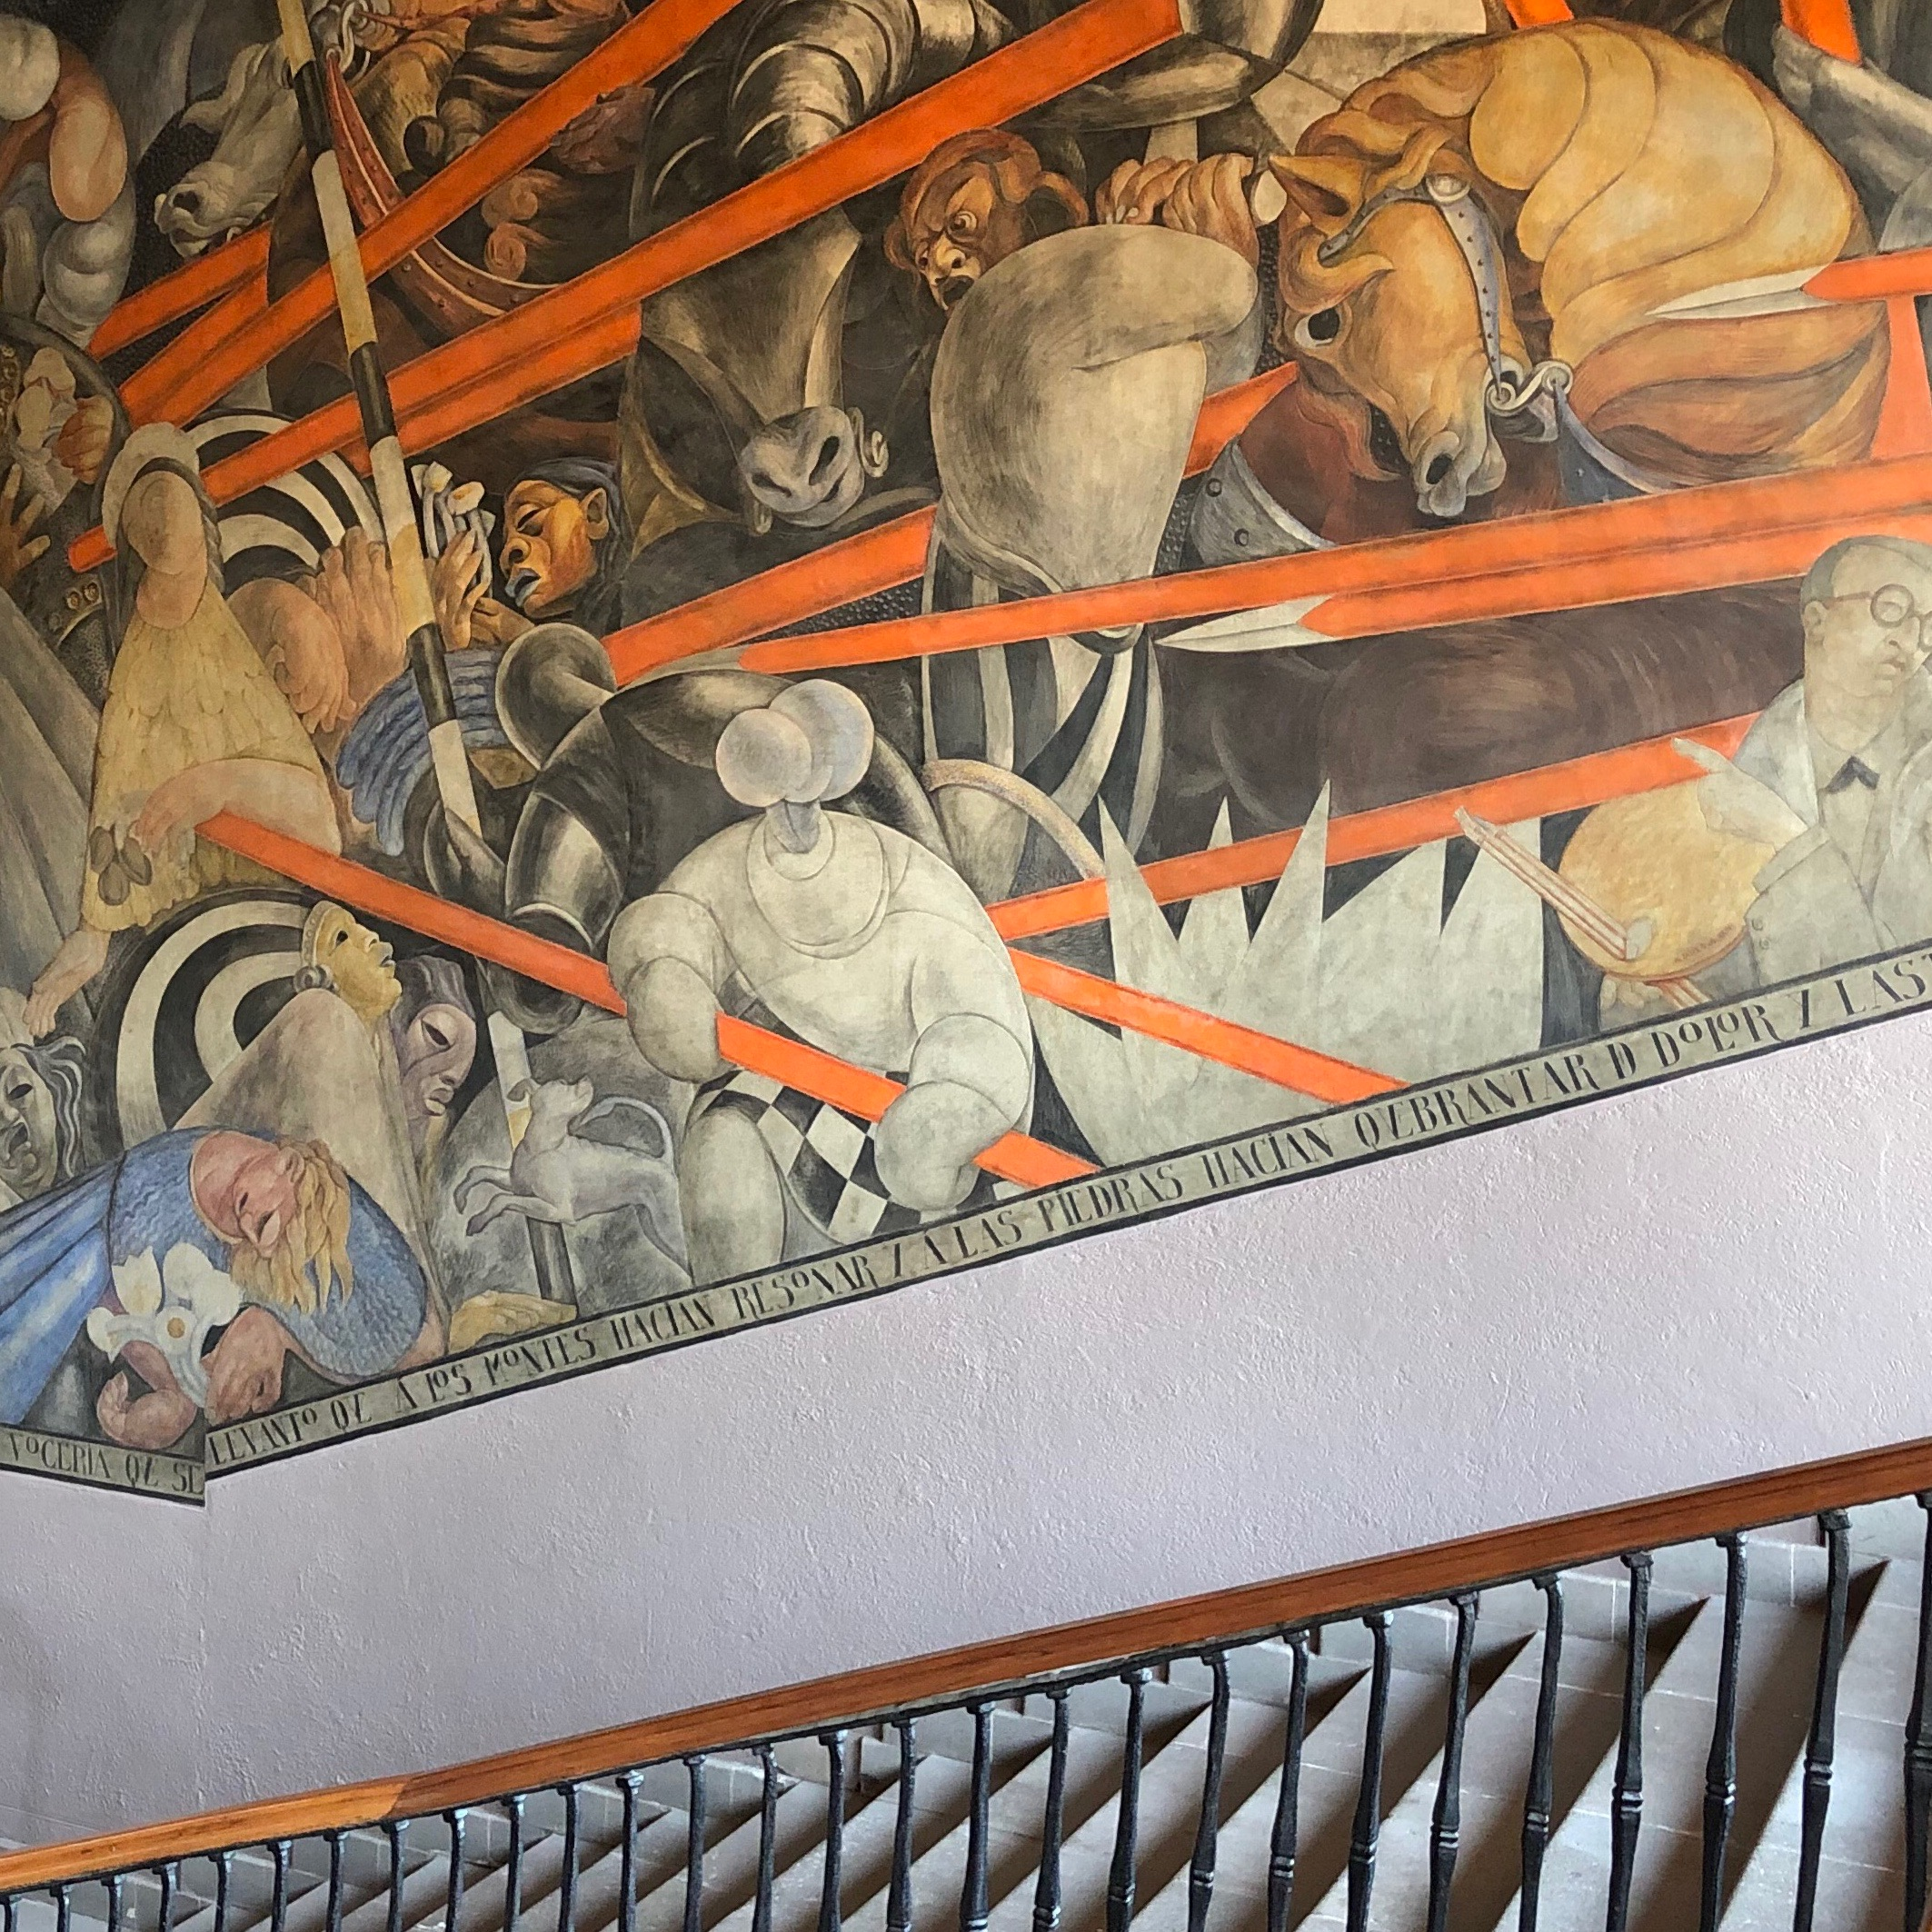 You'll spot murals all over the Antiguo Colegio de San Ildefonso